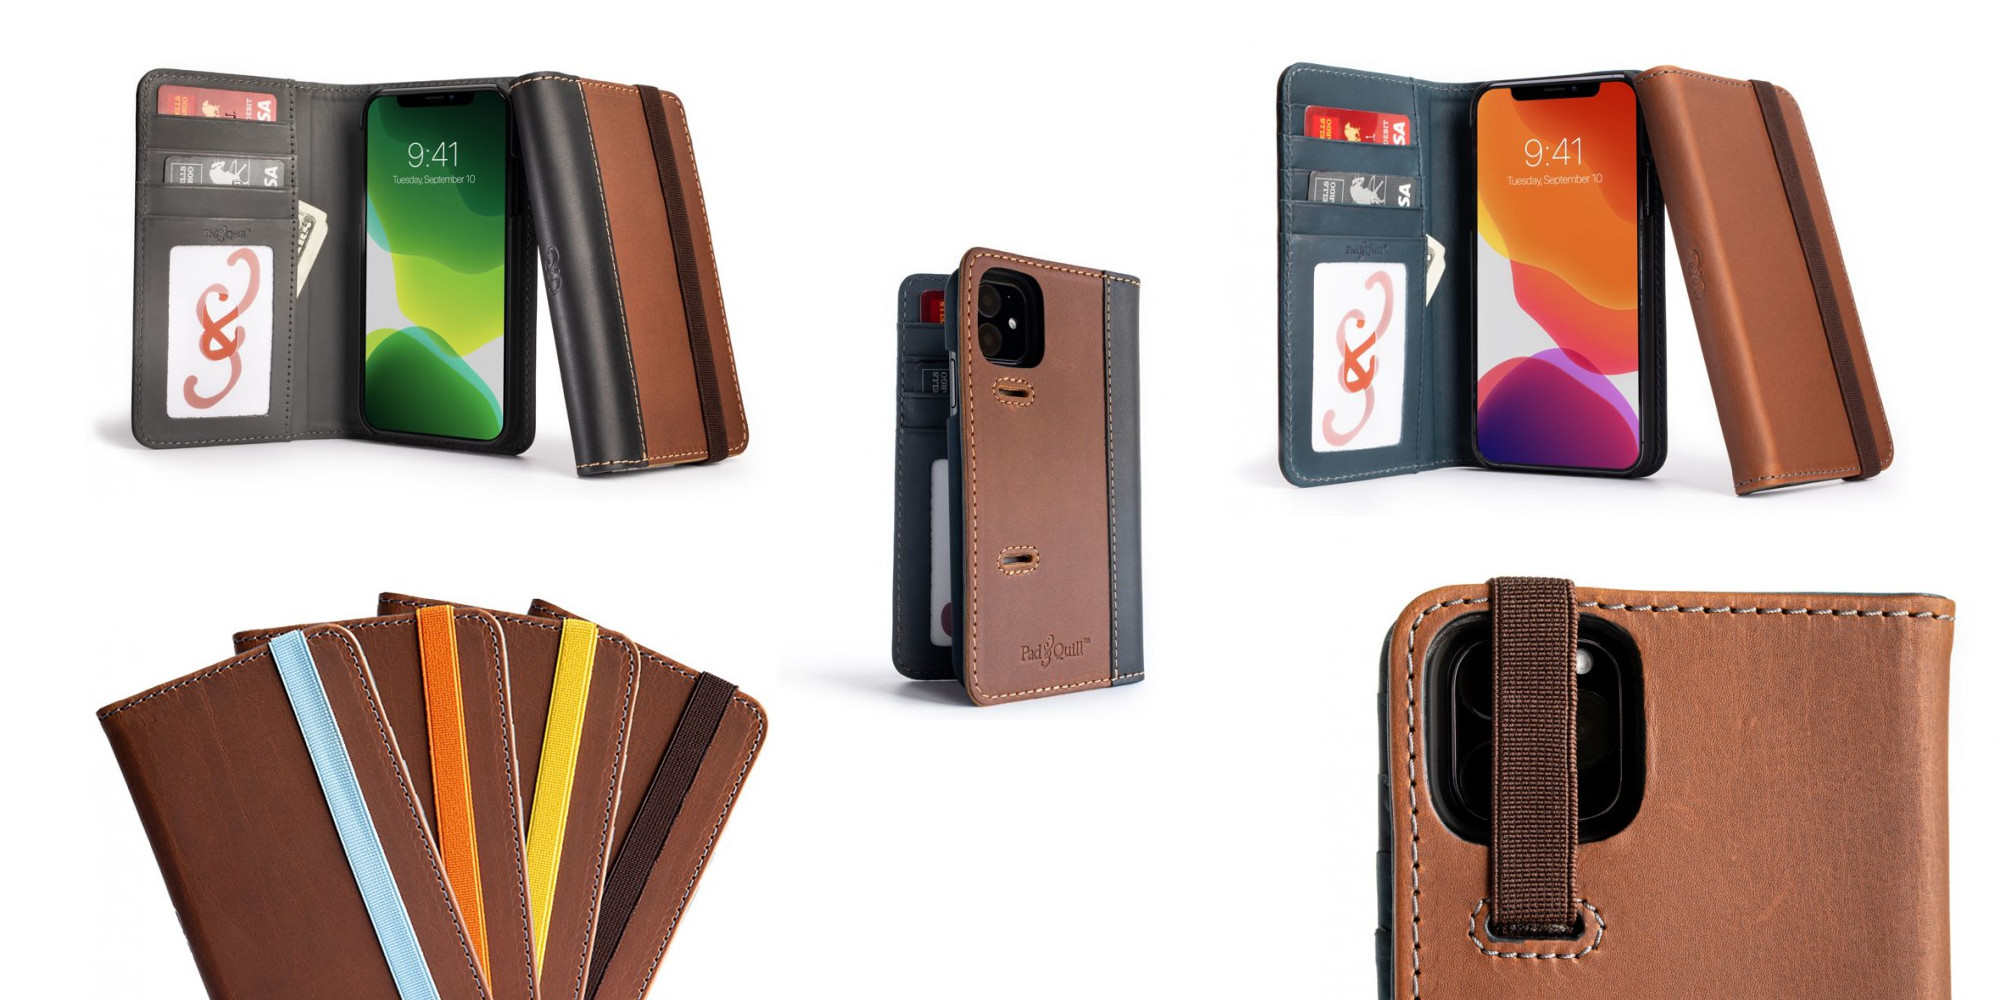 Pad & Quill iPhone 11 cases, bags, and accessories now up to 25% off